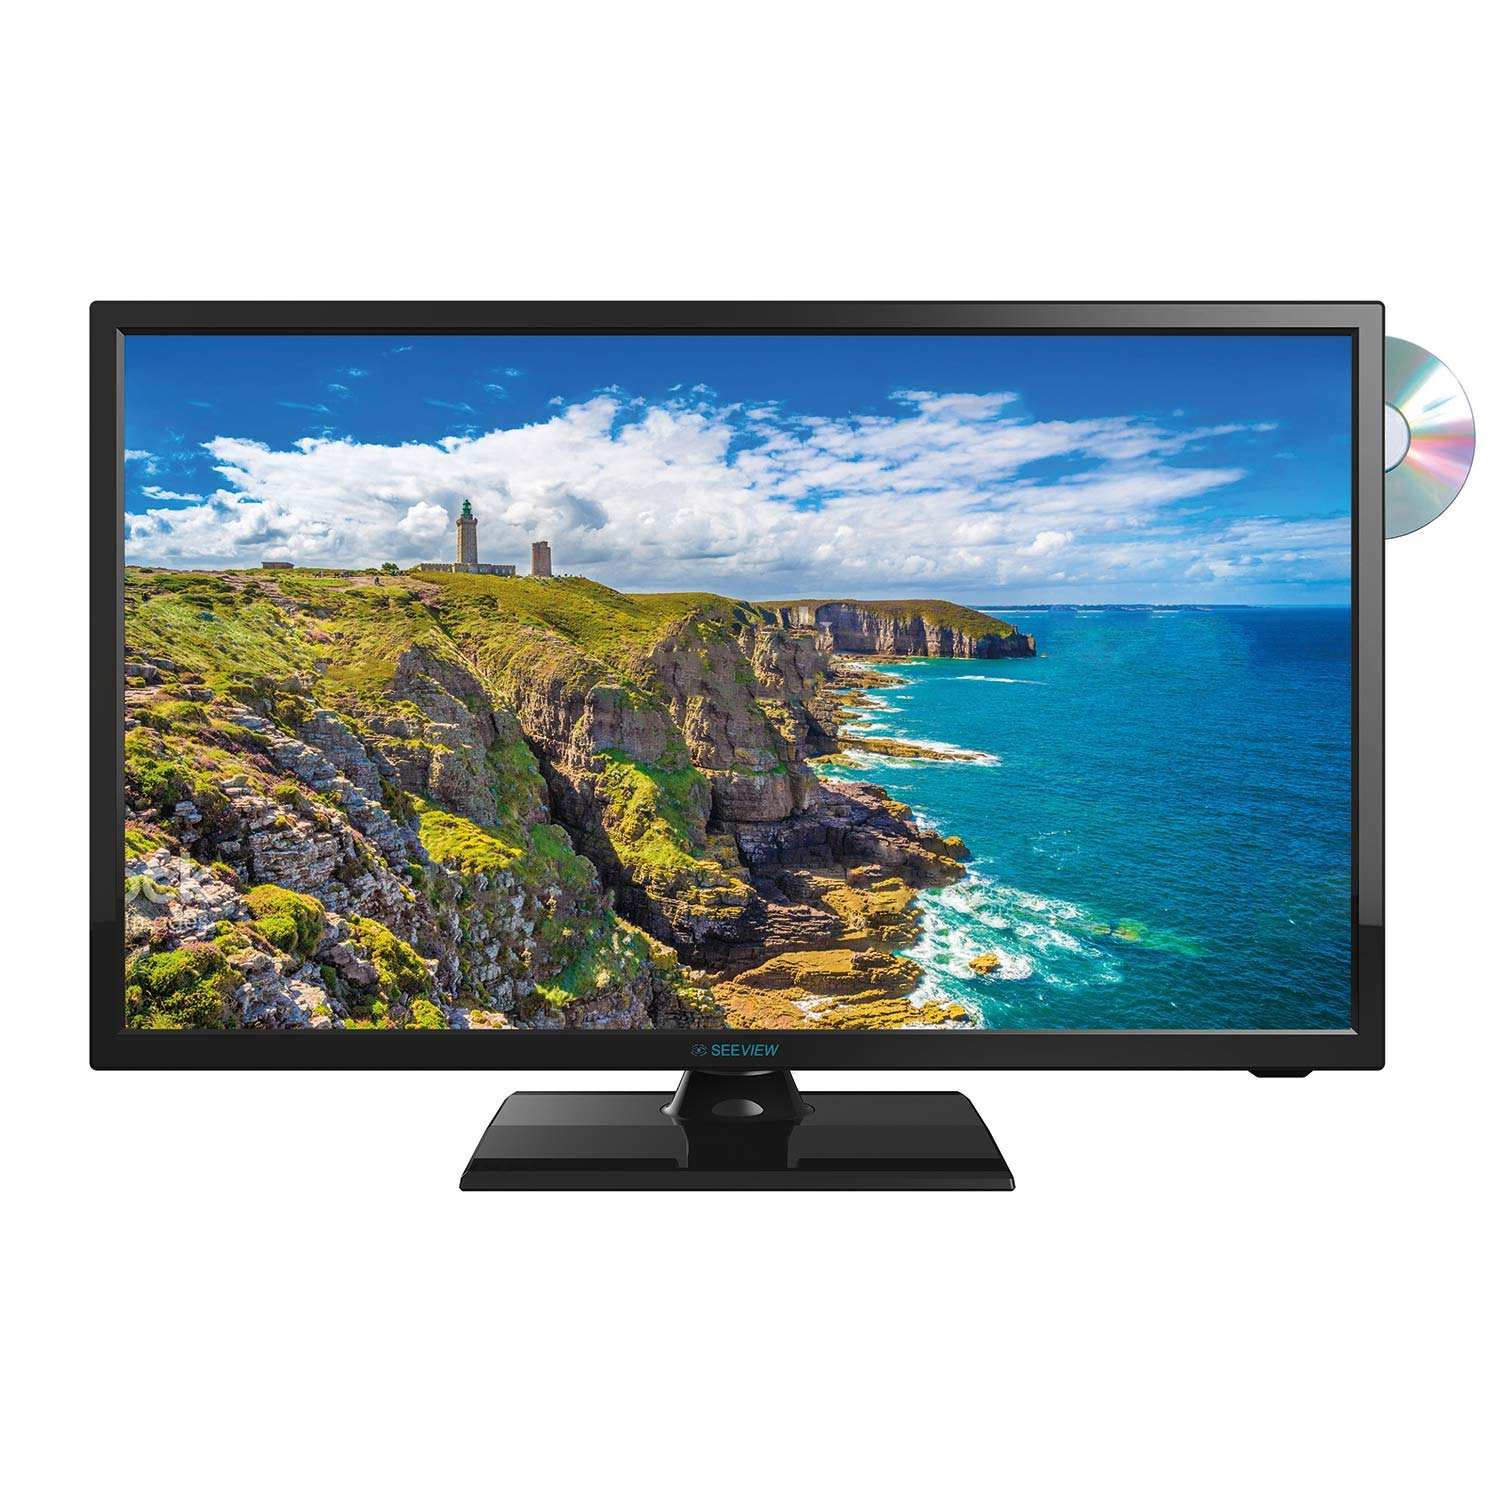 Televisor LED HD 18,5 (47 cm) 12/24 voltios + DVD Seeview ...